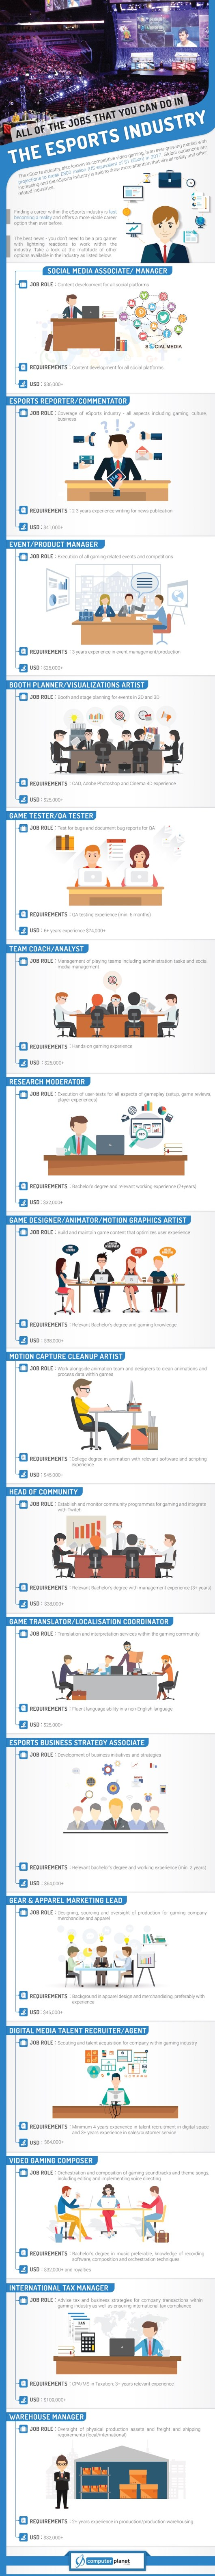 sports-careers-infographic